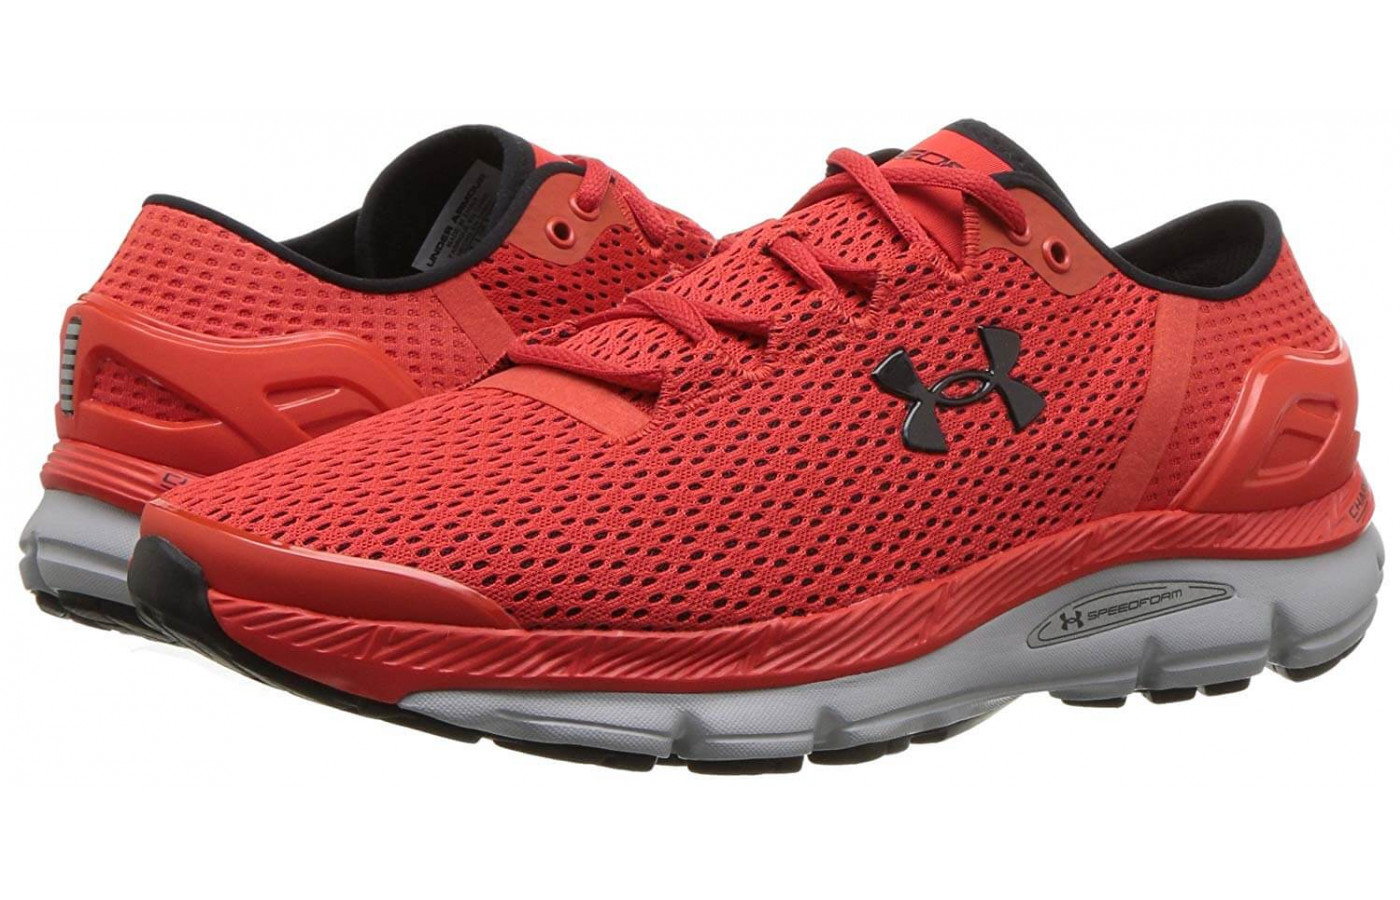 Under Armour SpeedForm Intake 2 left right